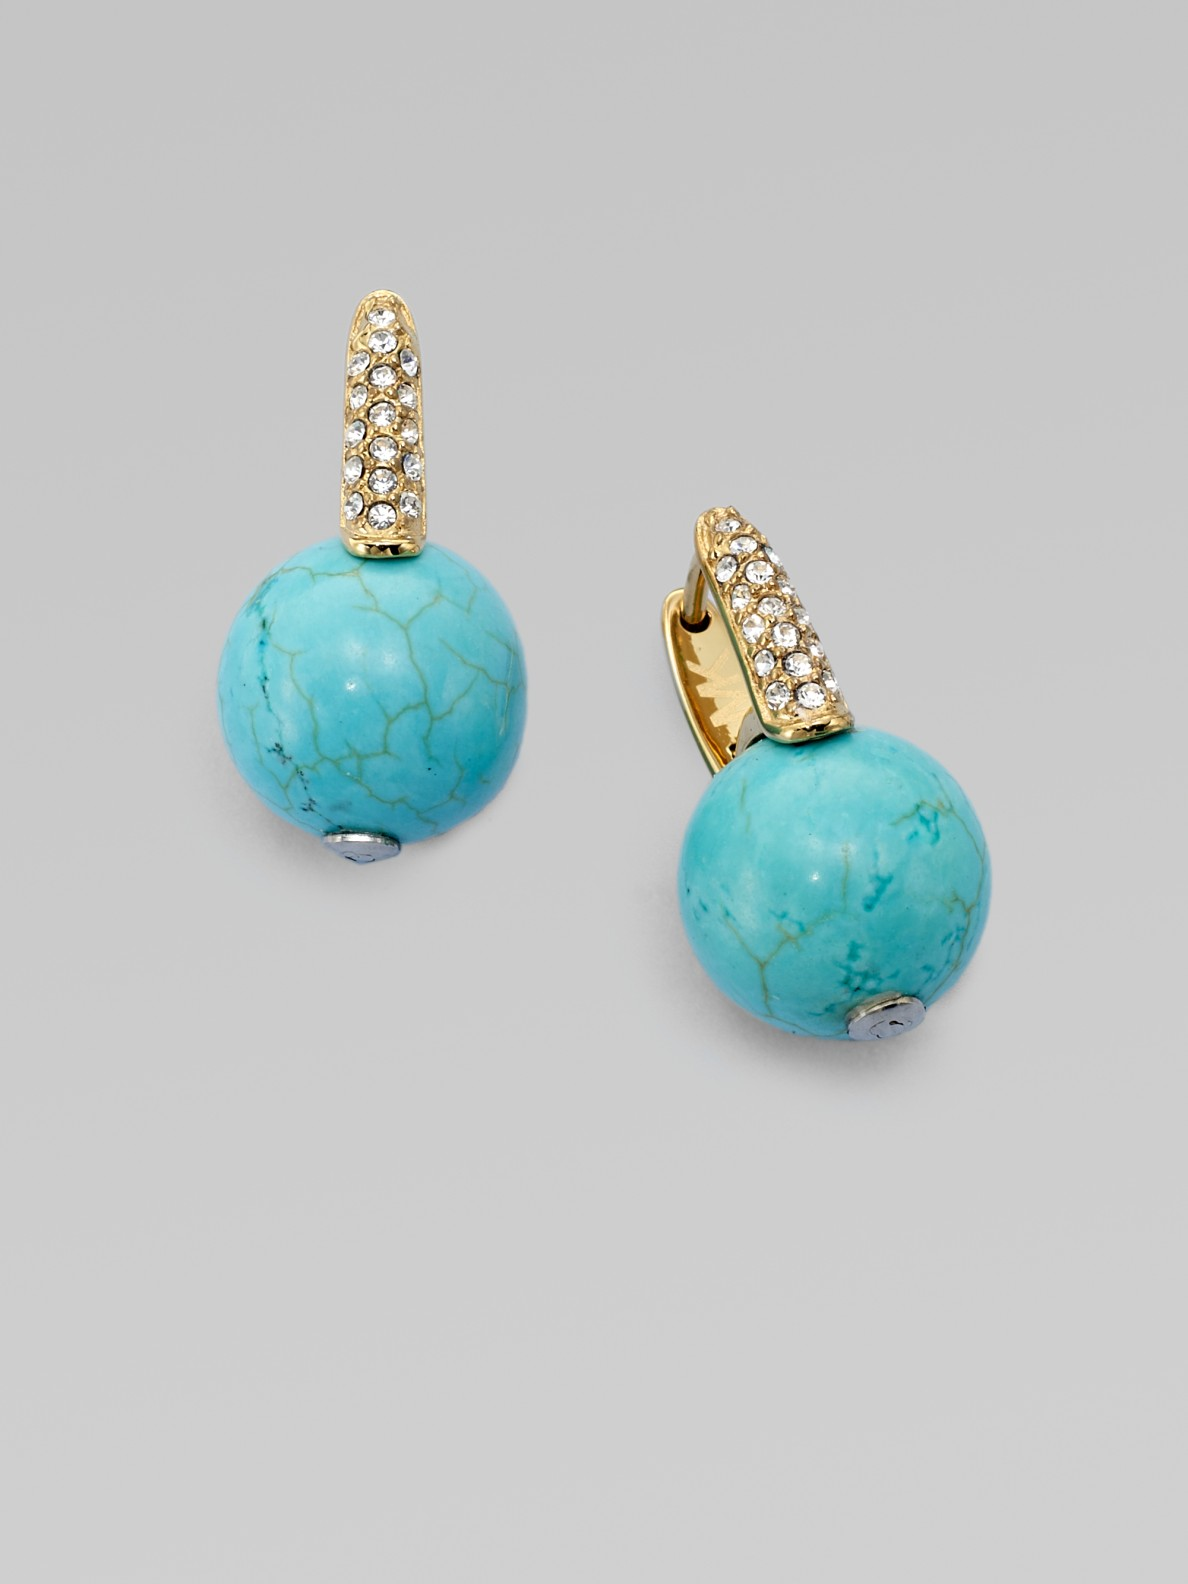 Michael Kors Stone Accented Turquoise Ball Earrings In